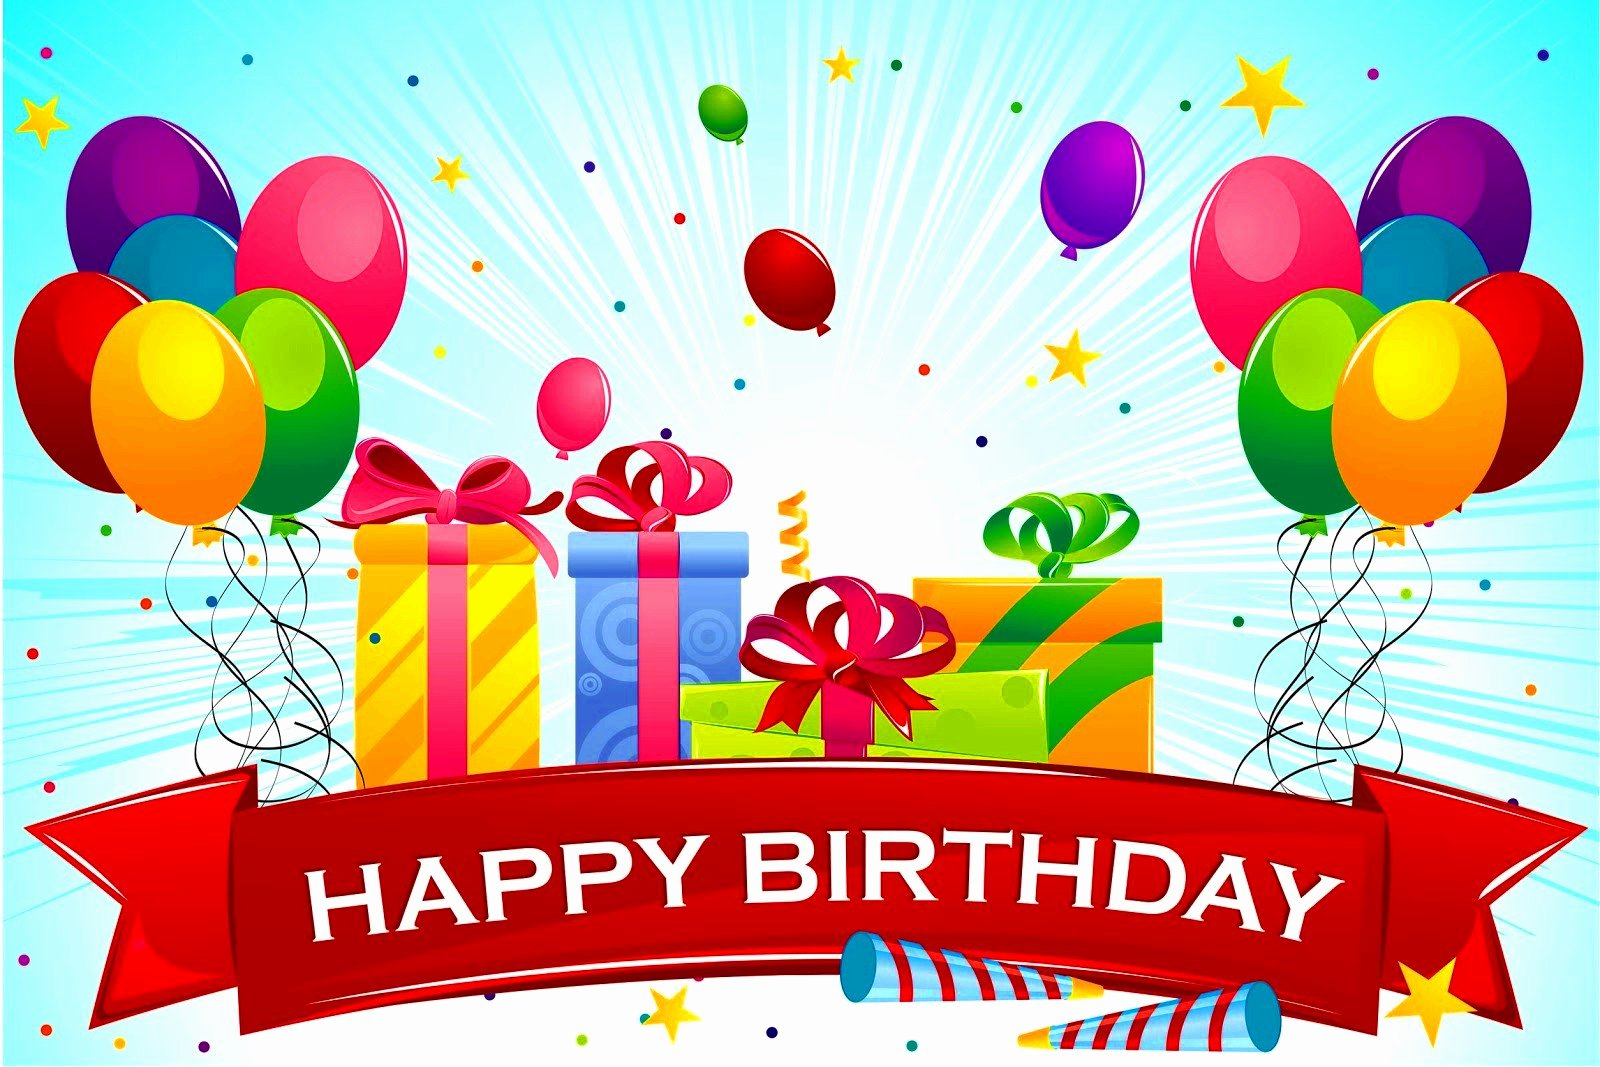 Free Downloads Happy Birthday Images Awesome Happy Birthday song Free Free